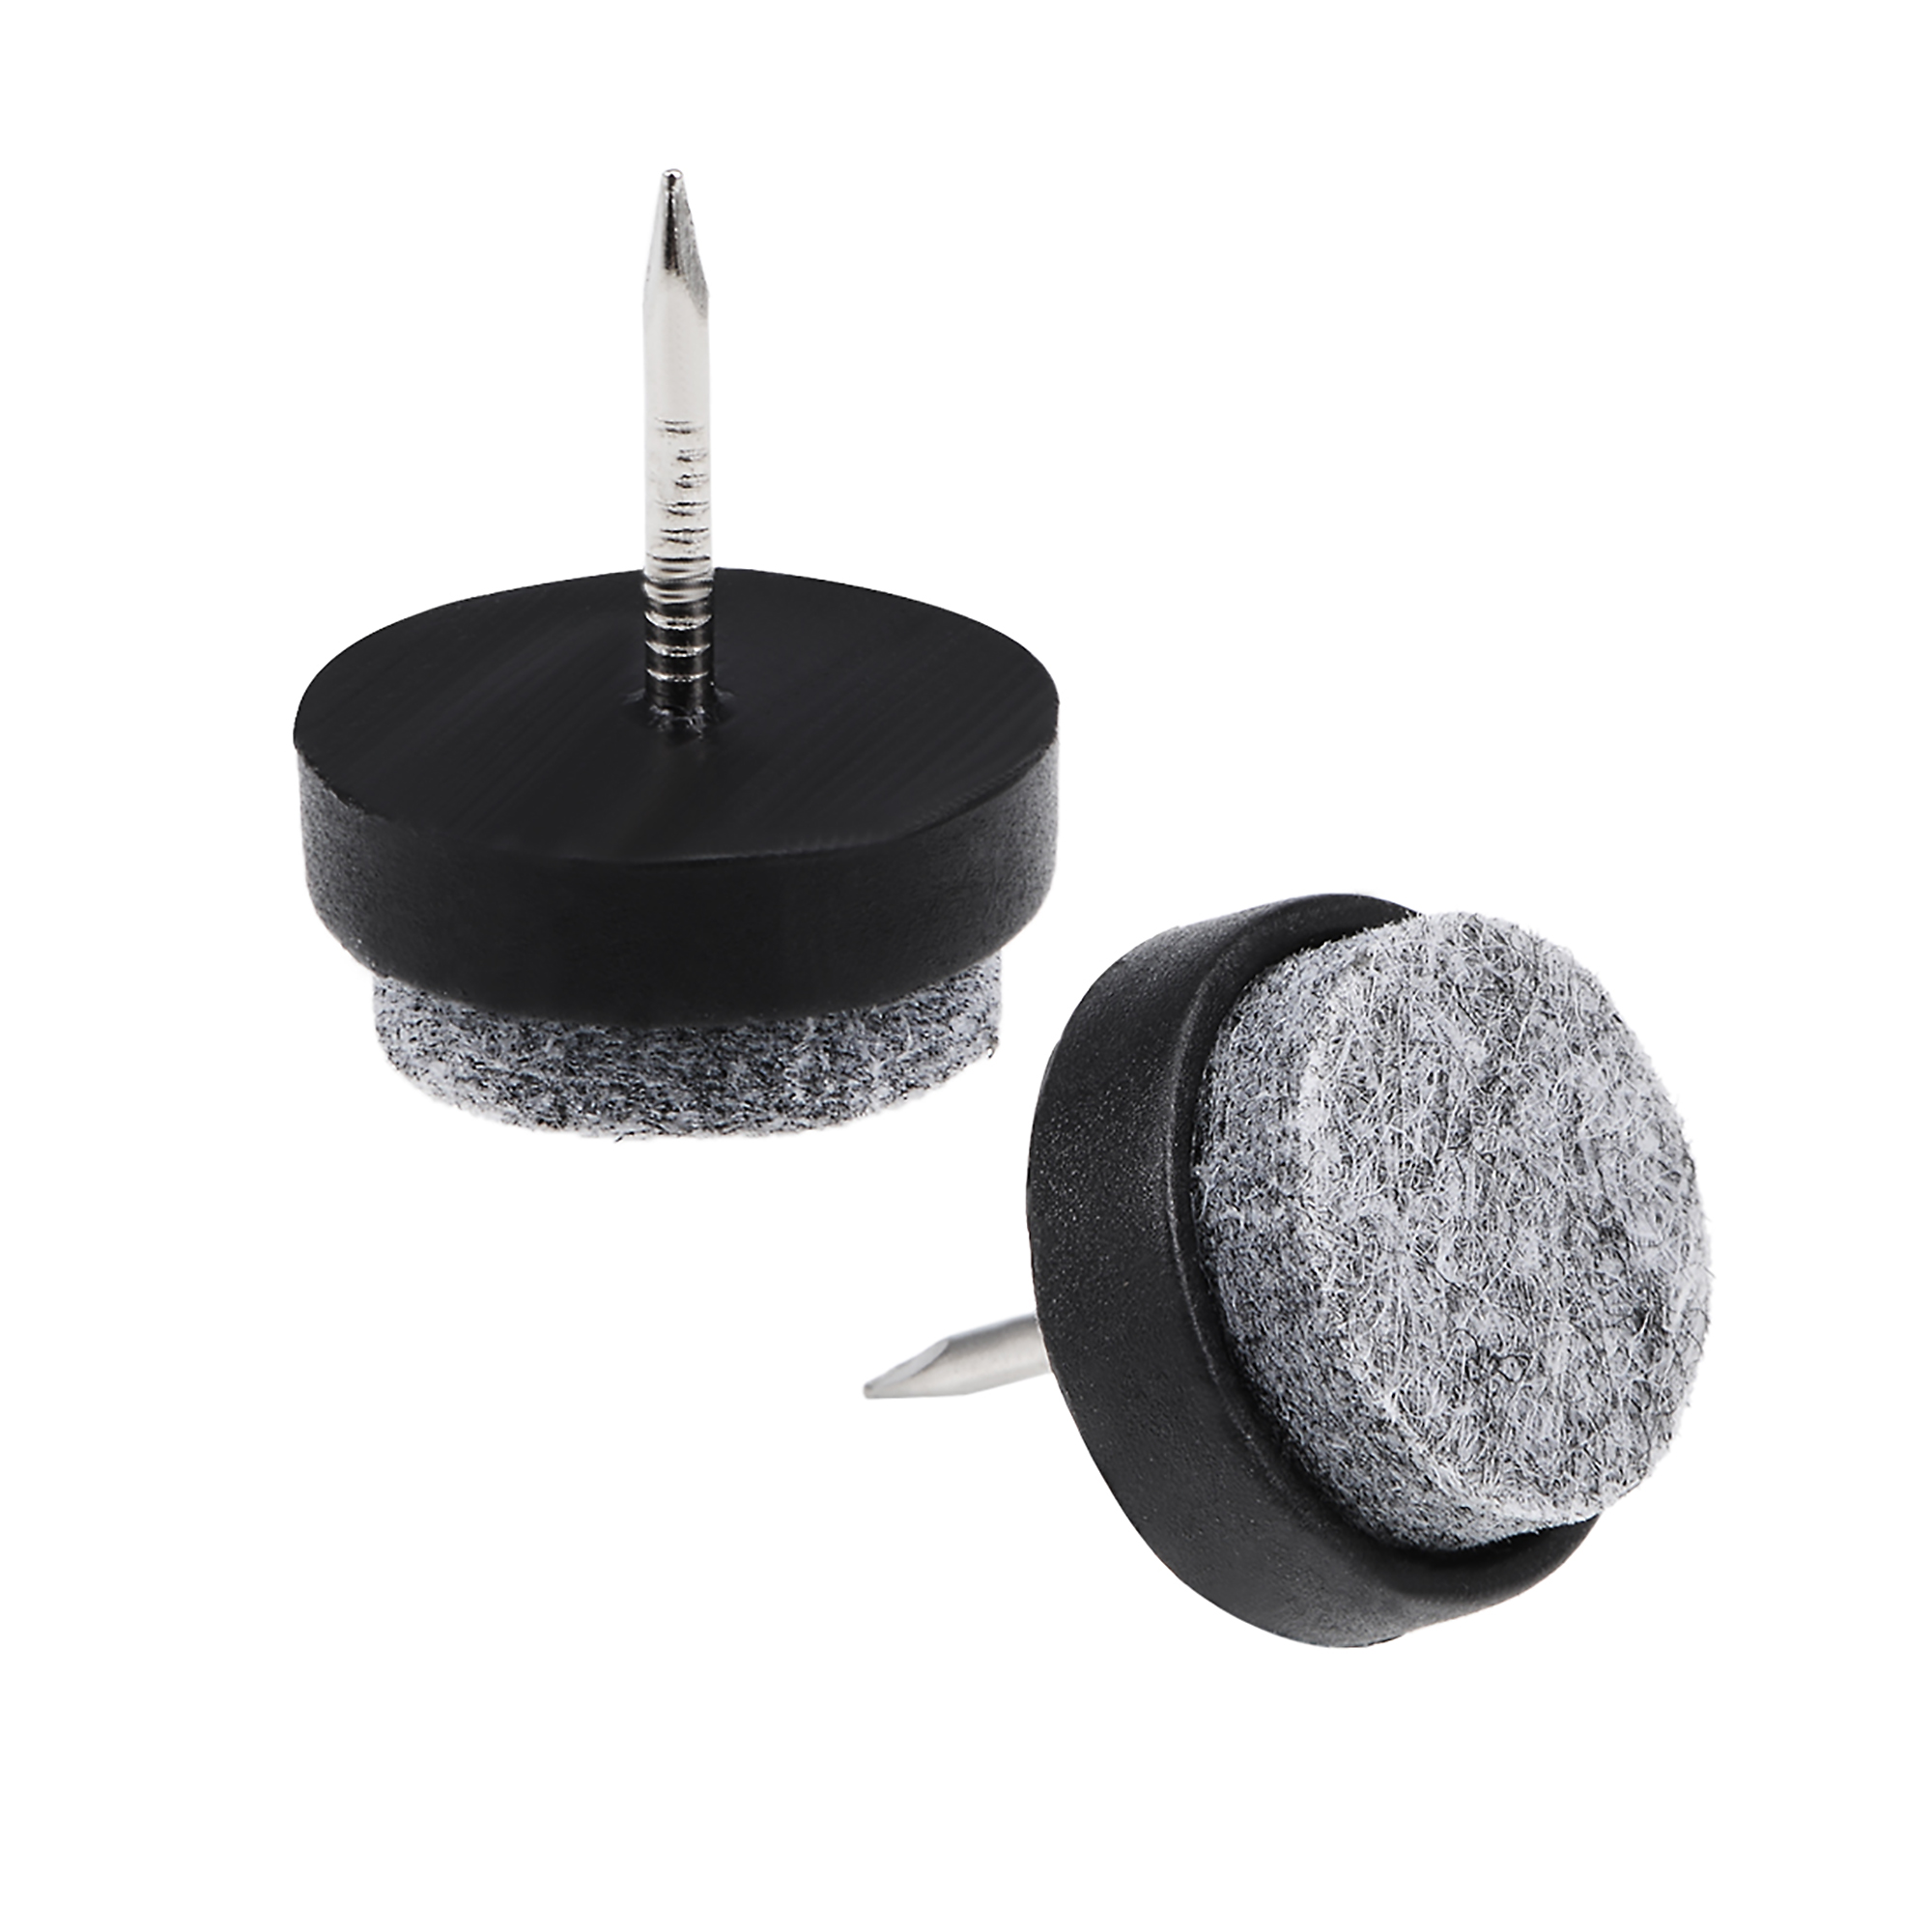 Nail On Furniture Felt Pads Glide Chair Table Leg Protector 20mm Dia Black 46pcs - image 5 of 5